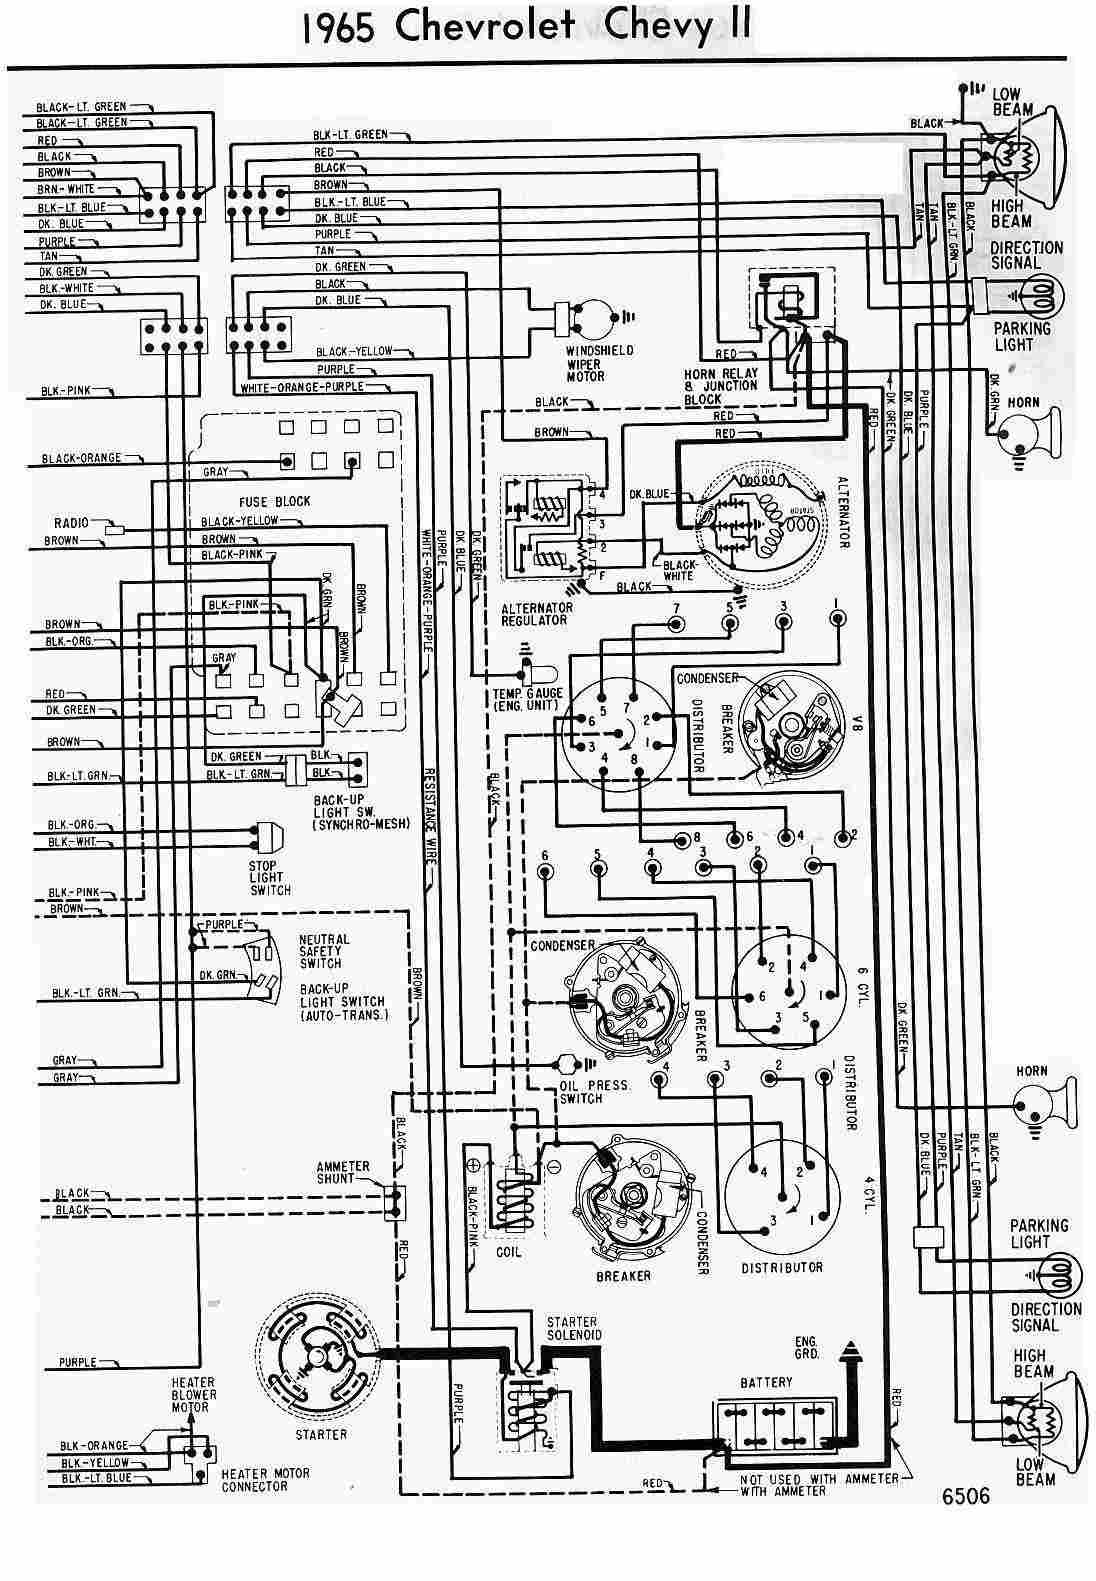 1966 chevelle ss engine harness diagram wiring diagram todays 1967 fairlane wiring diagram 1966 chevelle wiring [ 1096 x 1581 Pixel ]